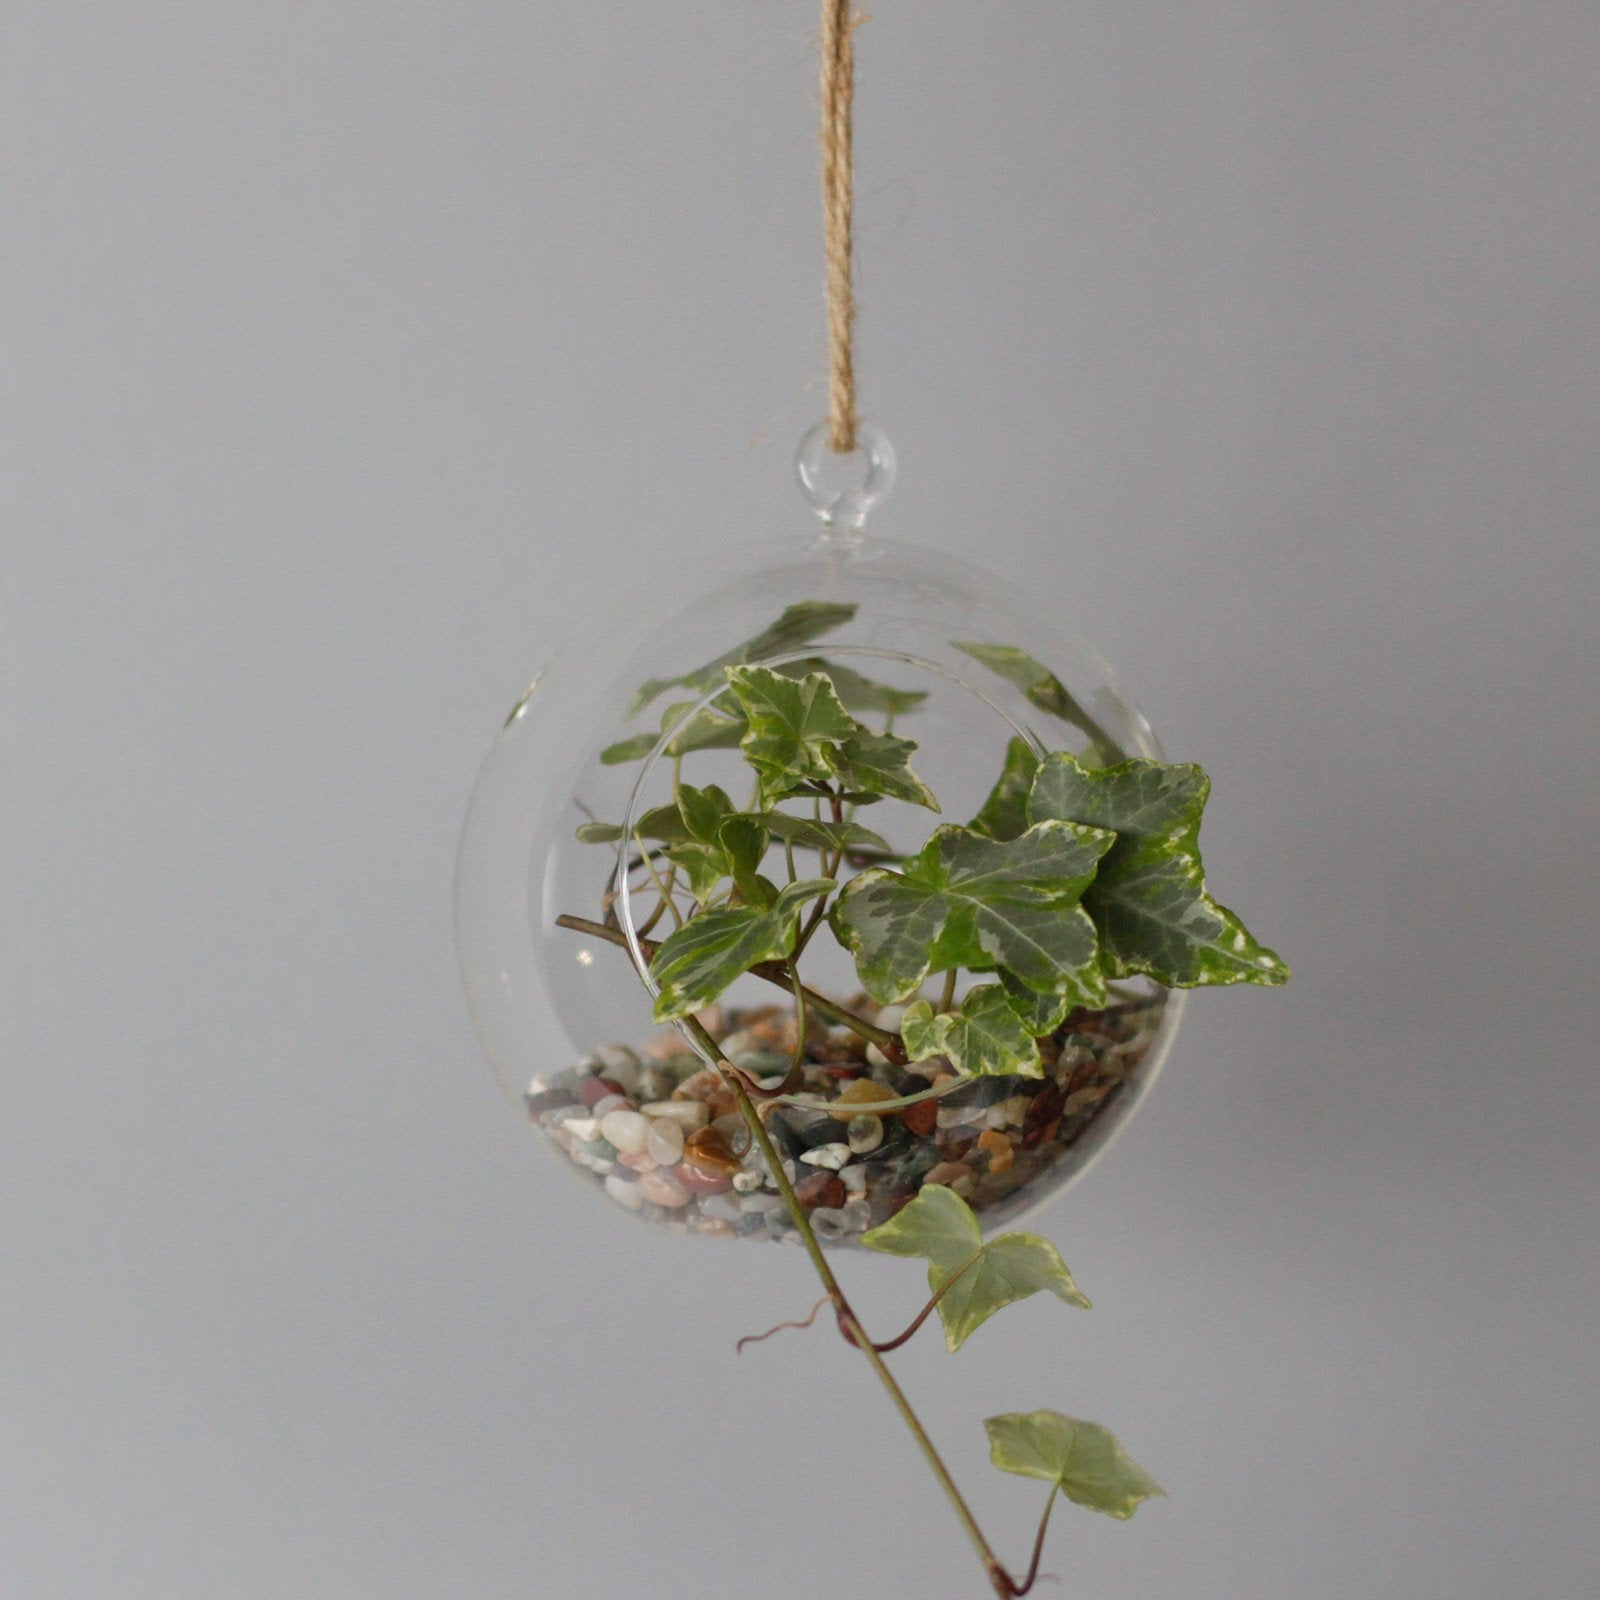 Globe Hanging Bowl All Glass Terrarium - Gift2U.co.uk - Unique gifts online to You